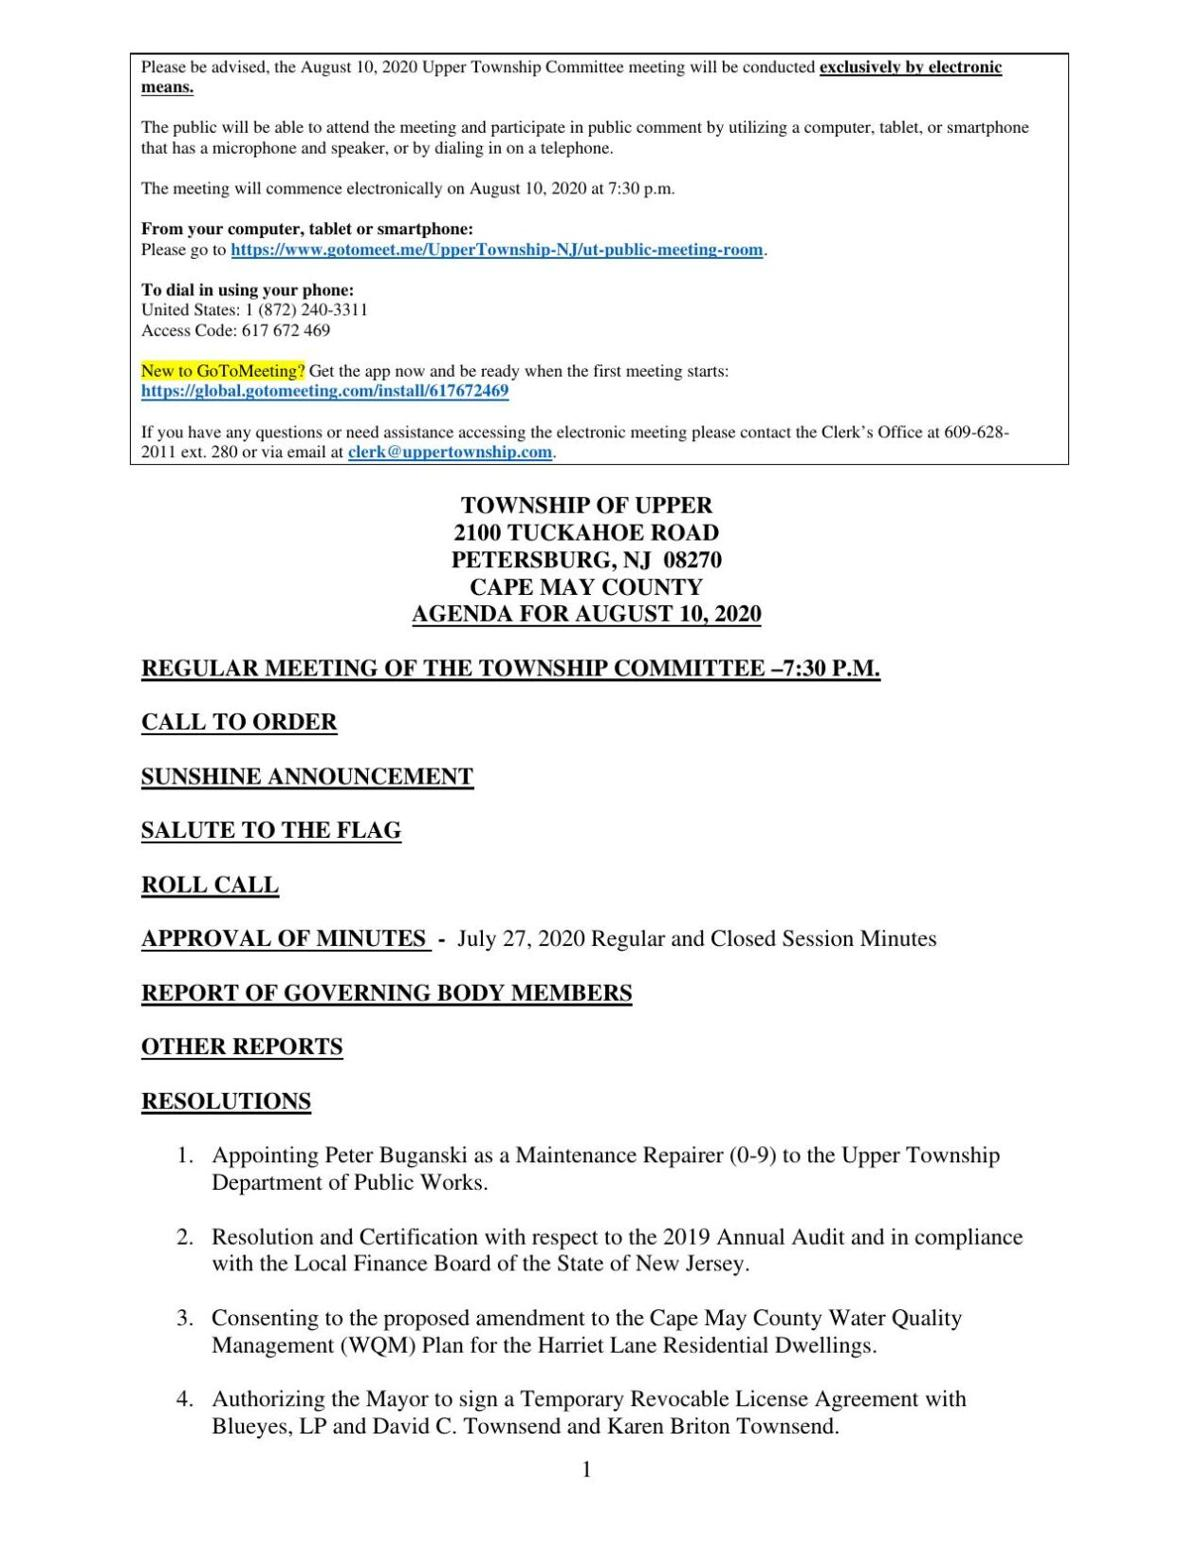 Upper Township Committee Meeting Agenda Aug. 10, 2020